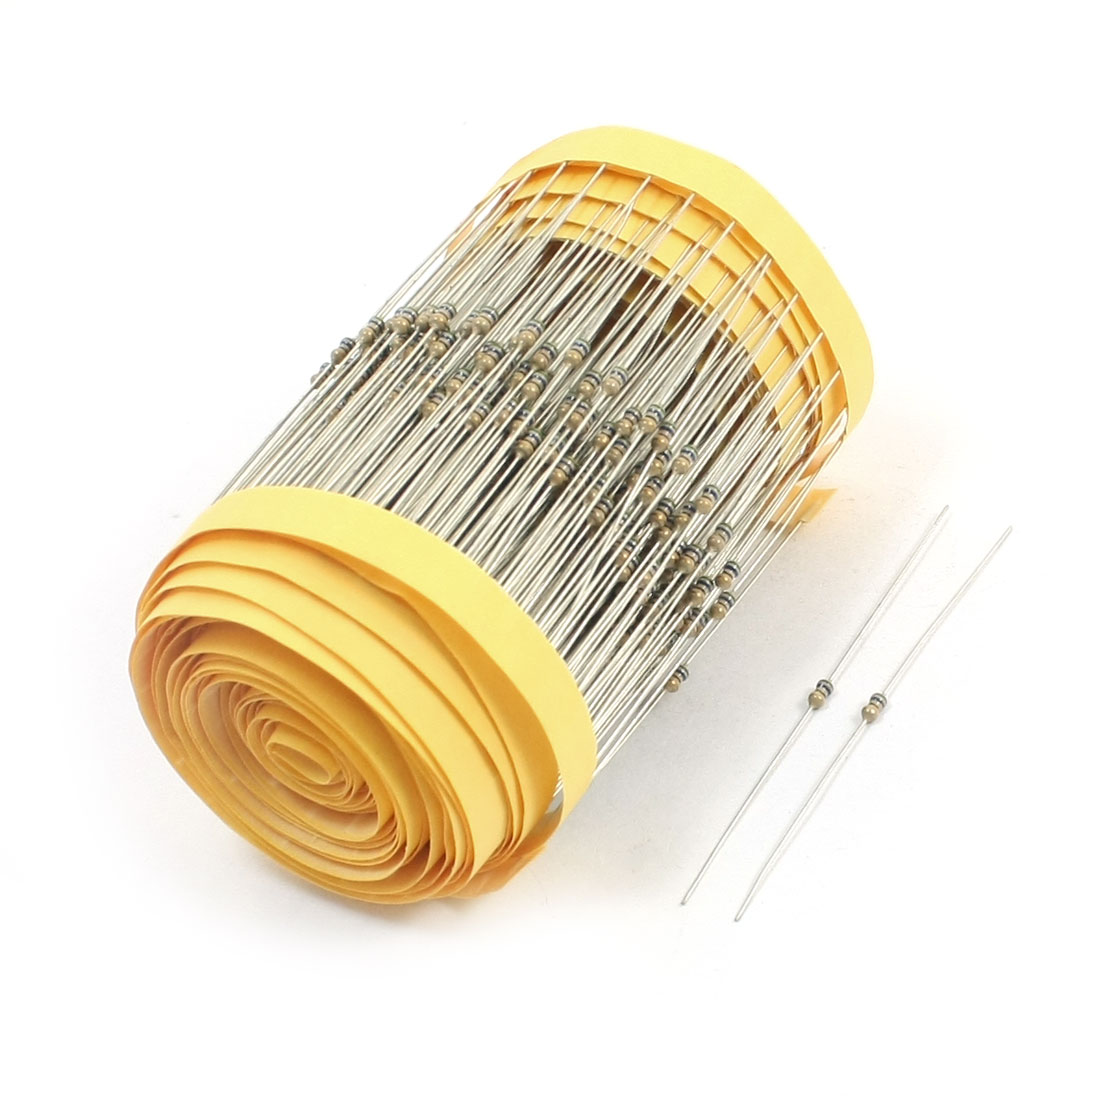 600Pcs 1/8W 56 Ohm 5% Tolerance Axial Lead Type Through Hole Mount 4 Color Ring Carbon Film Fixed Resistors